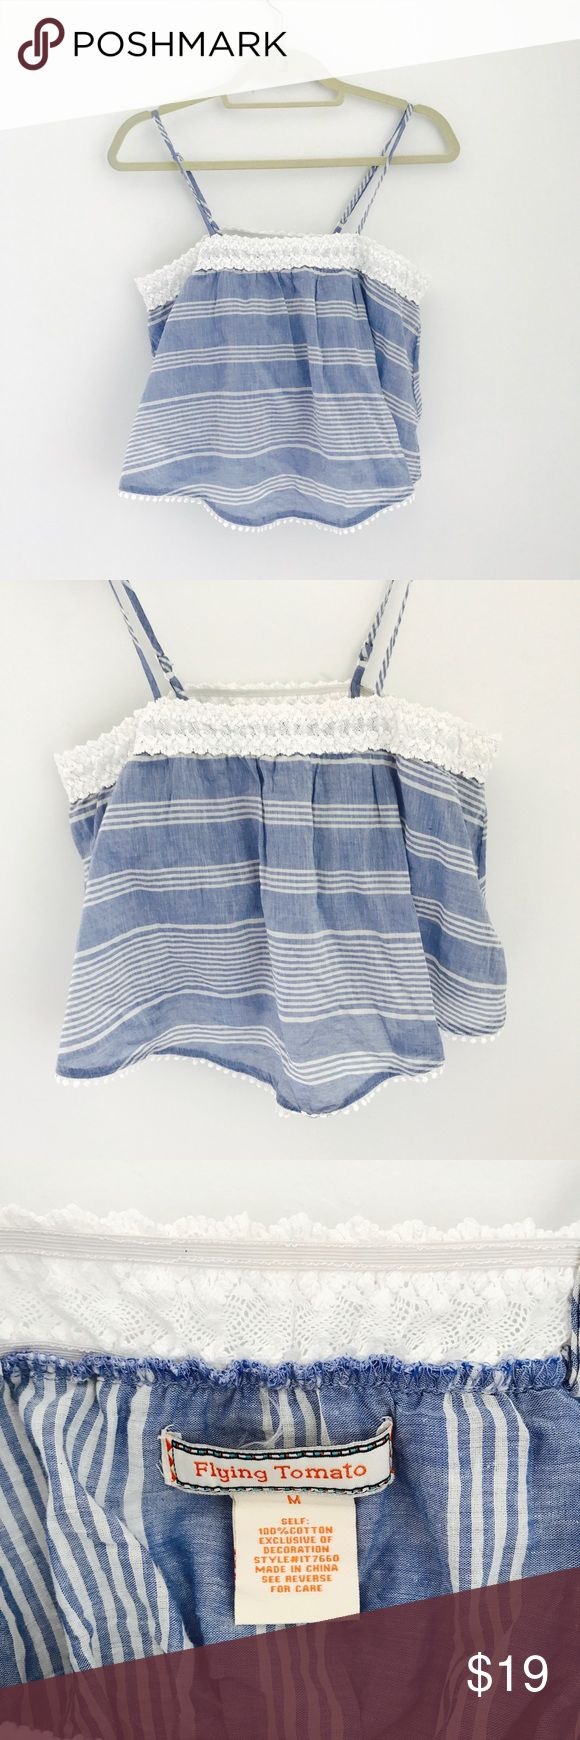 Nasty Gal Blue and White Striped Tank size M NWOT Nasty Gal brand called Flying Tomato size blue and white stripped cami tank. Light linen material. Adjustable straps. Perfect for summer or a vacation! Size Medium. Never worn. Purchased for $58. Nasty Gal Tops Tank Tops